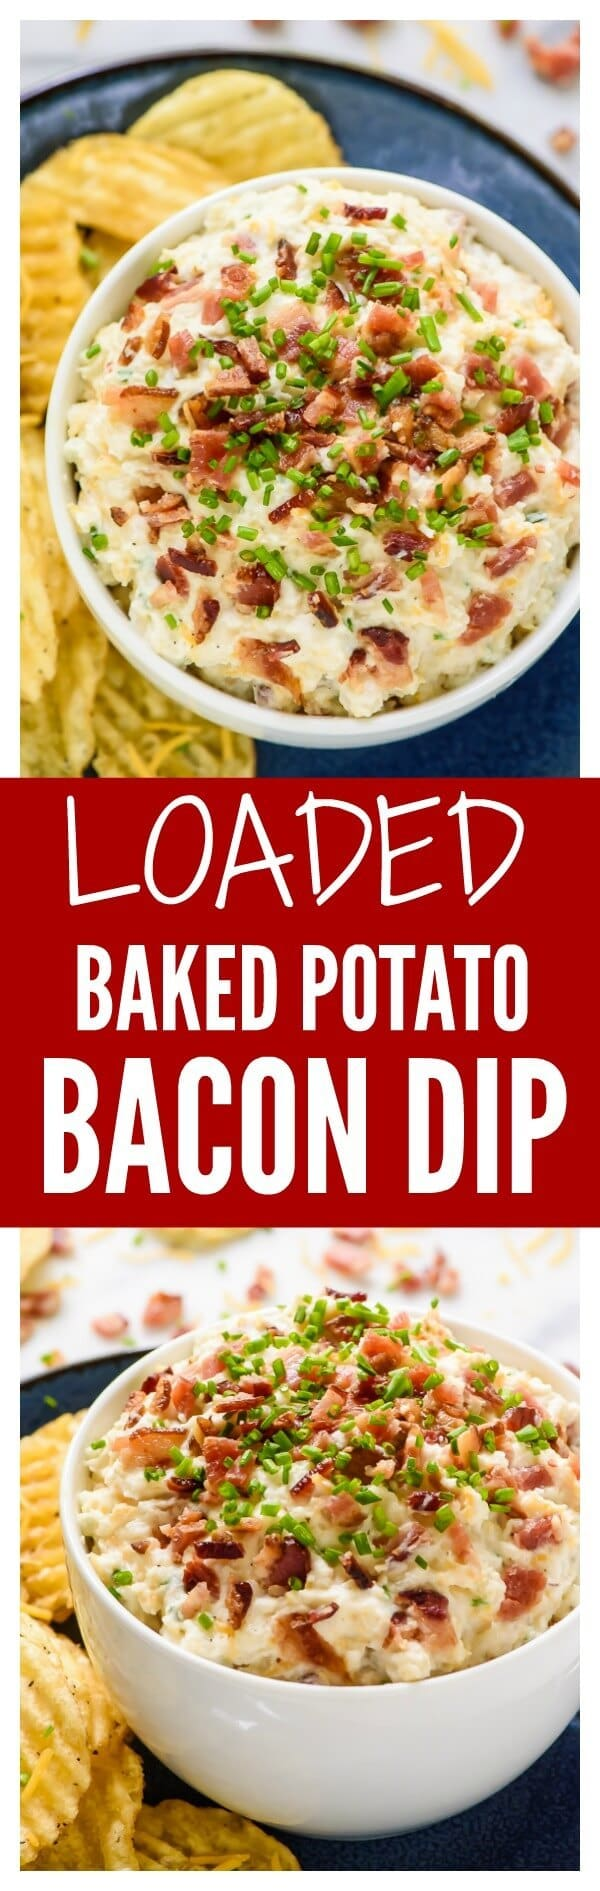 No one will be able to stop eating this Loaded Baked Potato Dip with Bacon Sour Cream and All the Fixins